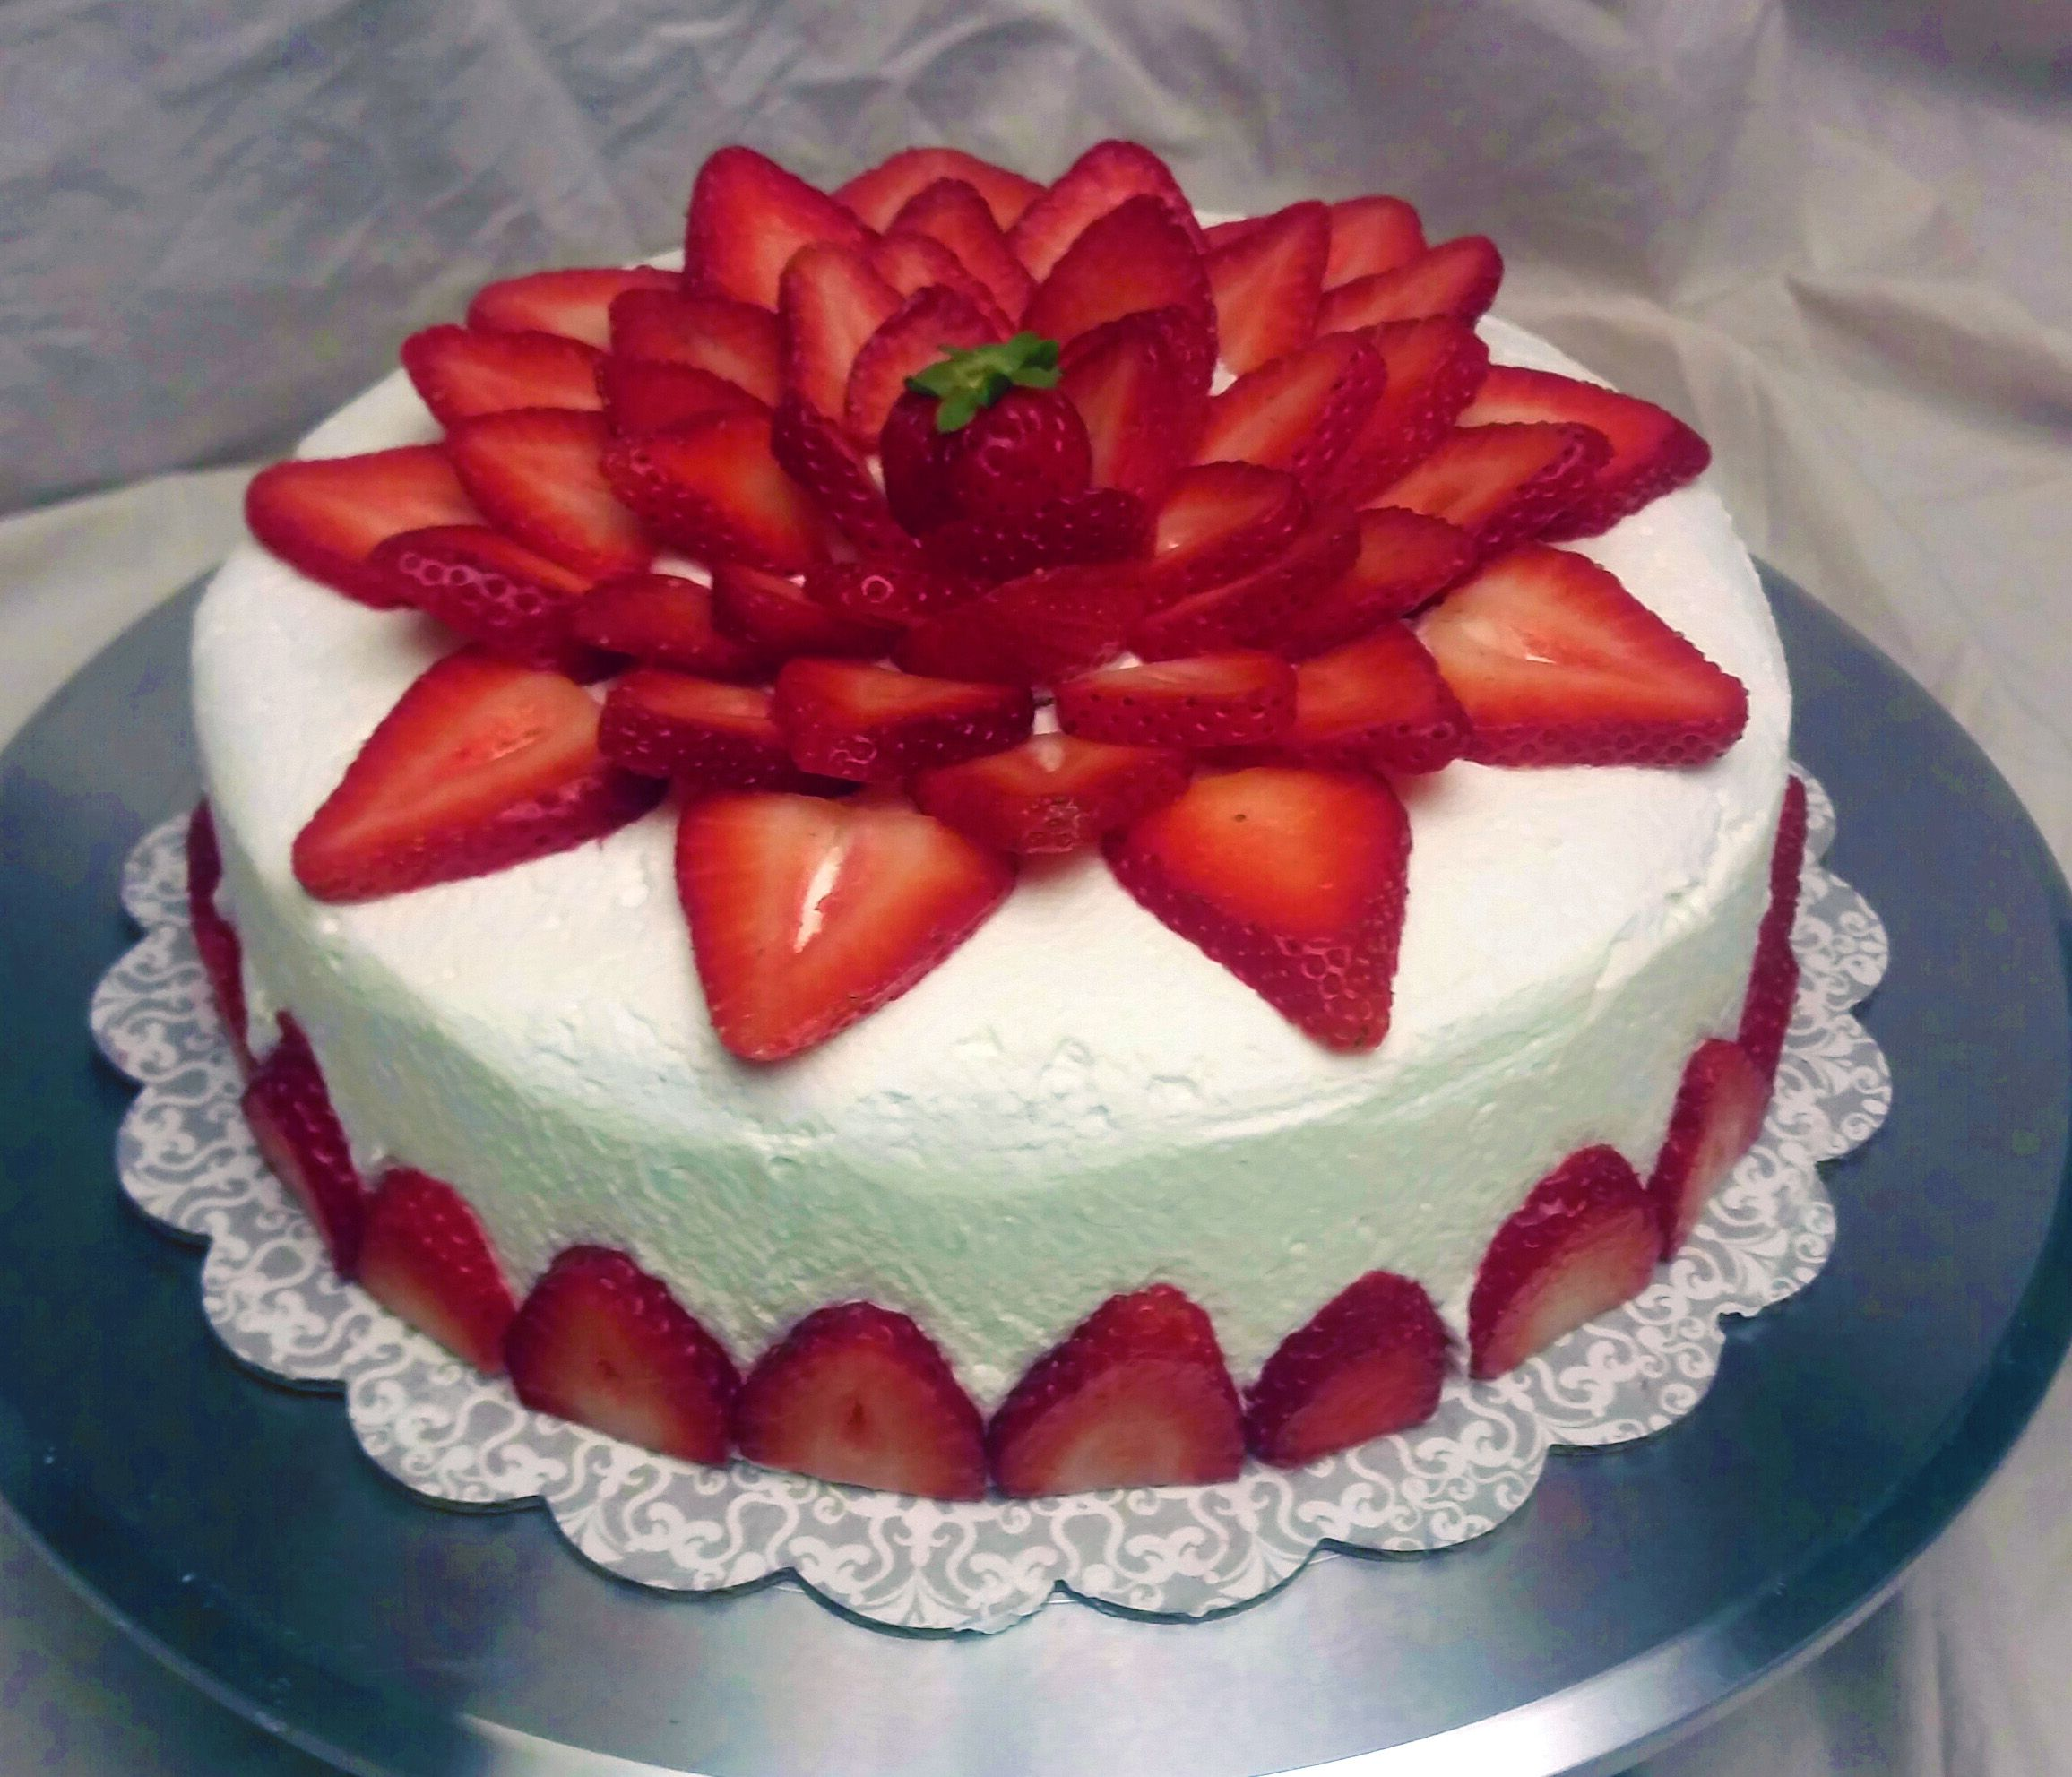 Pin By Robyn Degaetano On Baking Tutorials In 2019 Strawberry Cake